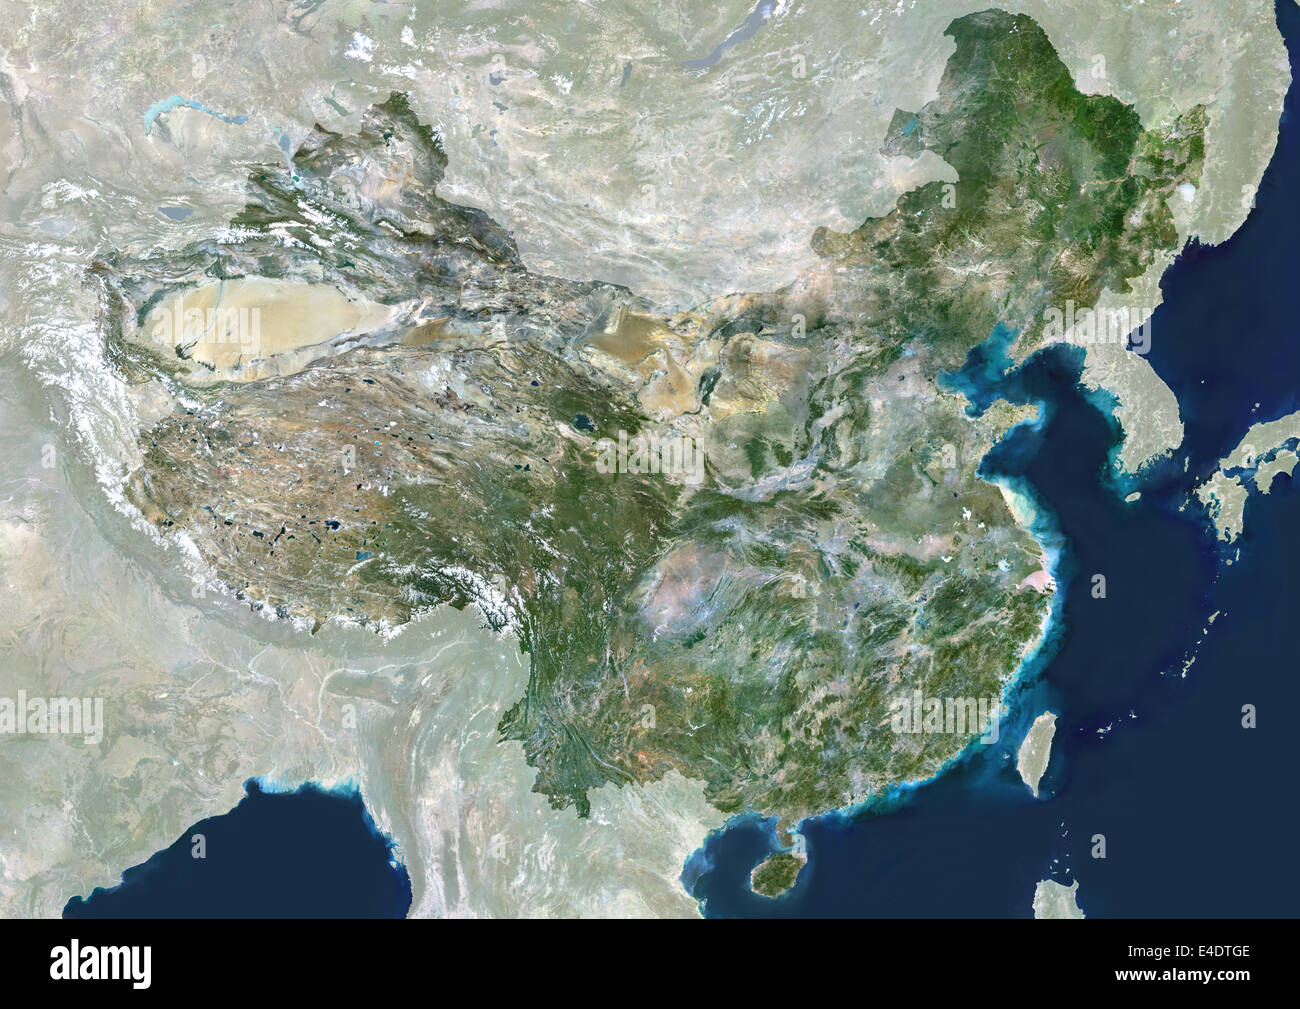 China, True Colour Satellite Image With Mask. People's Republic of China, true colour satellite image with mask. - Stock Image